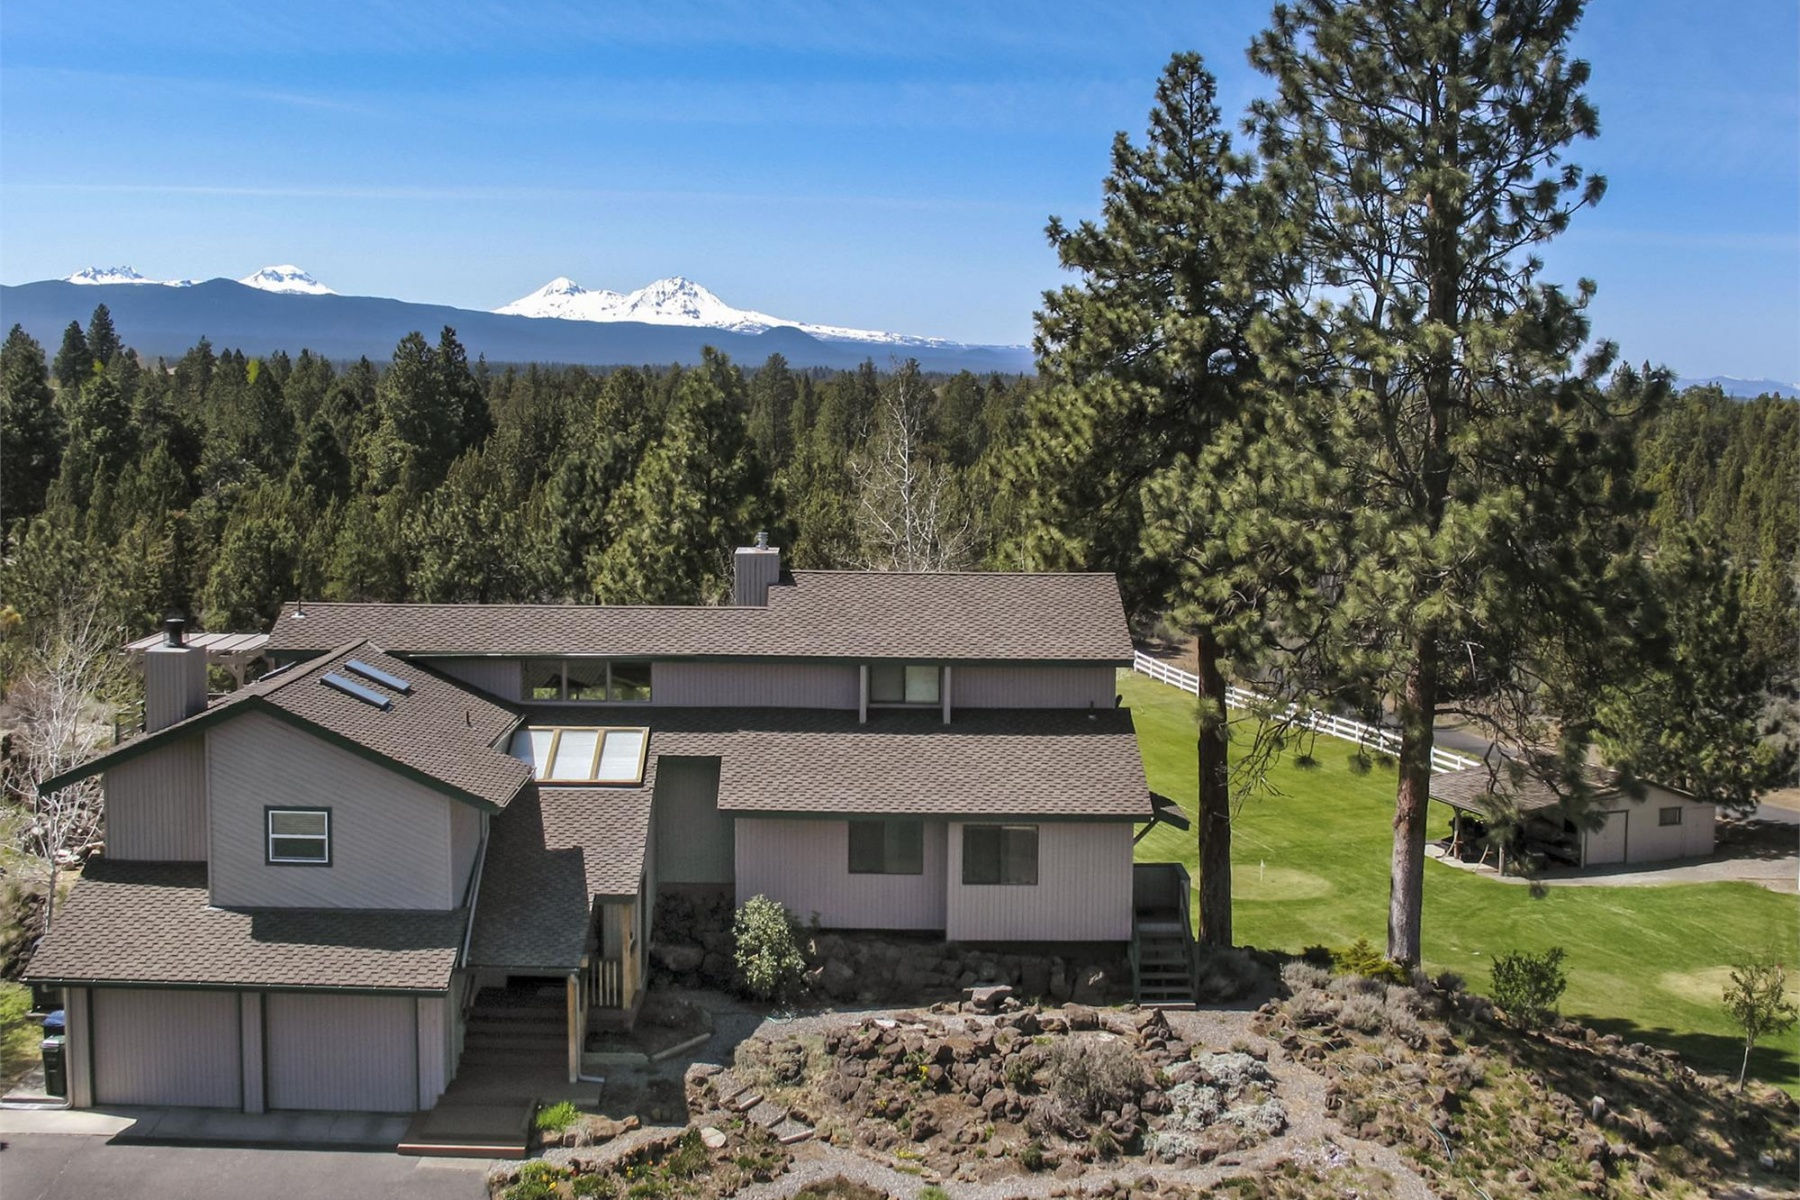 Single Family Home for Sale at 20123 Cox Lane, BEND 20123 Cox Ln Bend, Oregon, 97701 United States